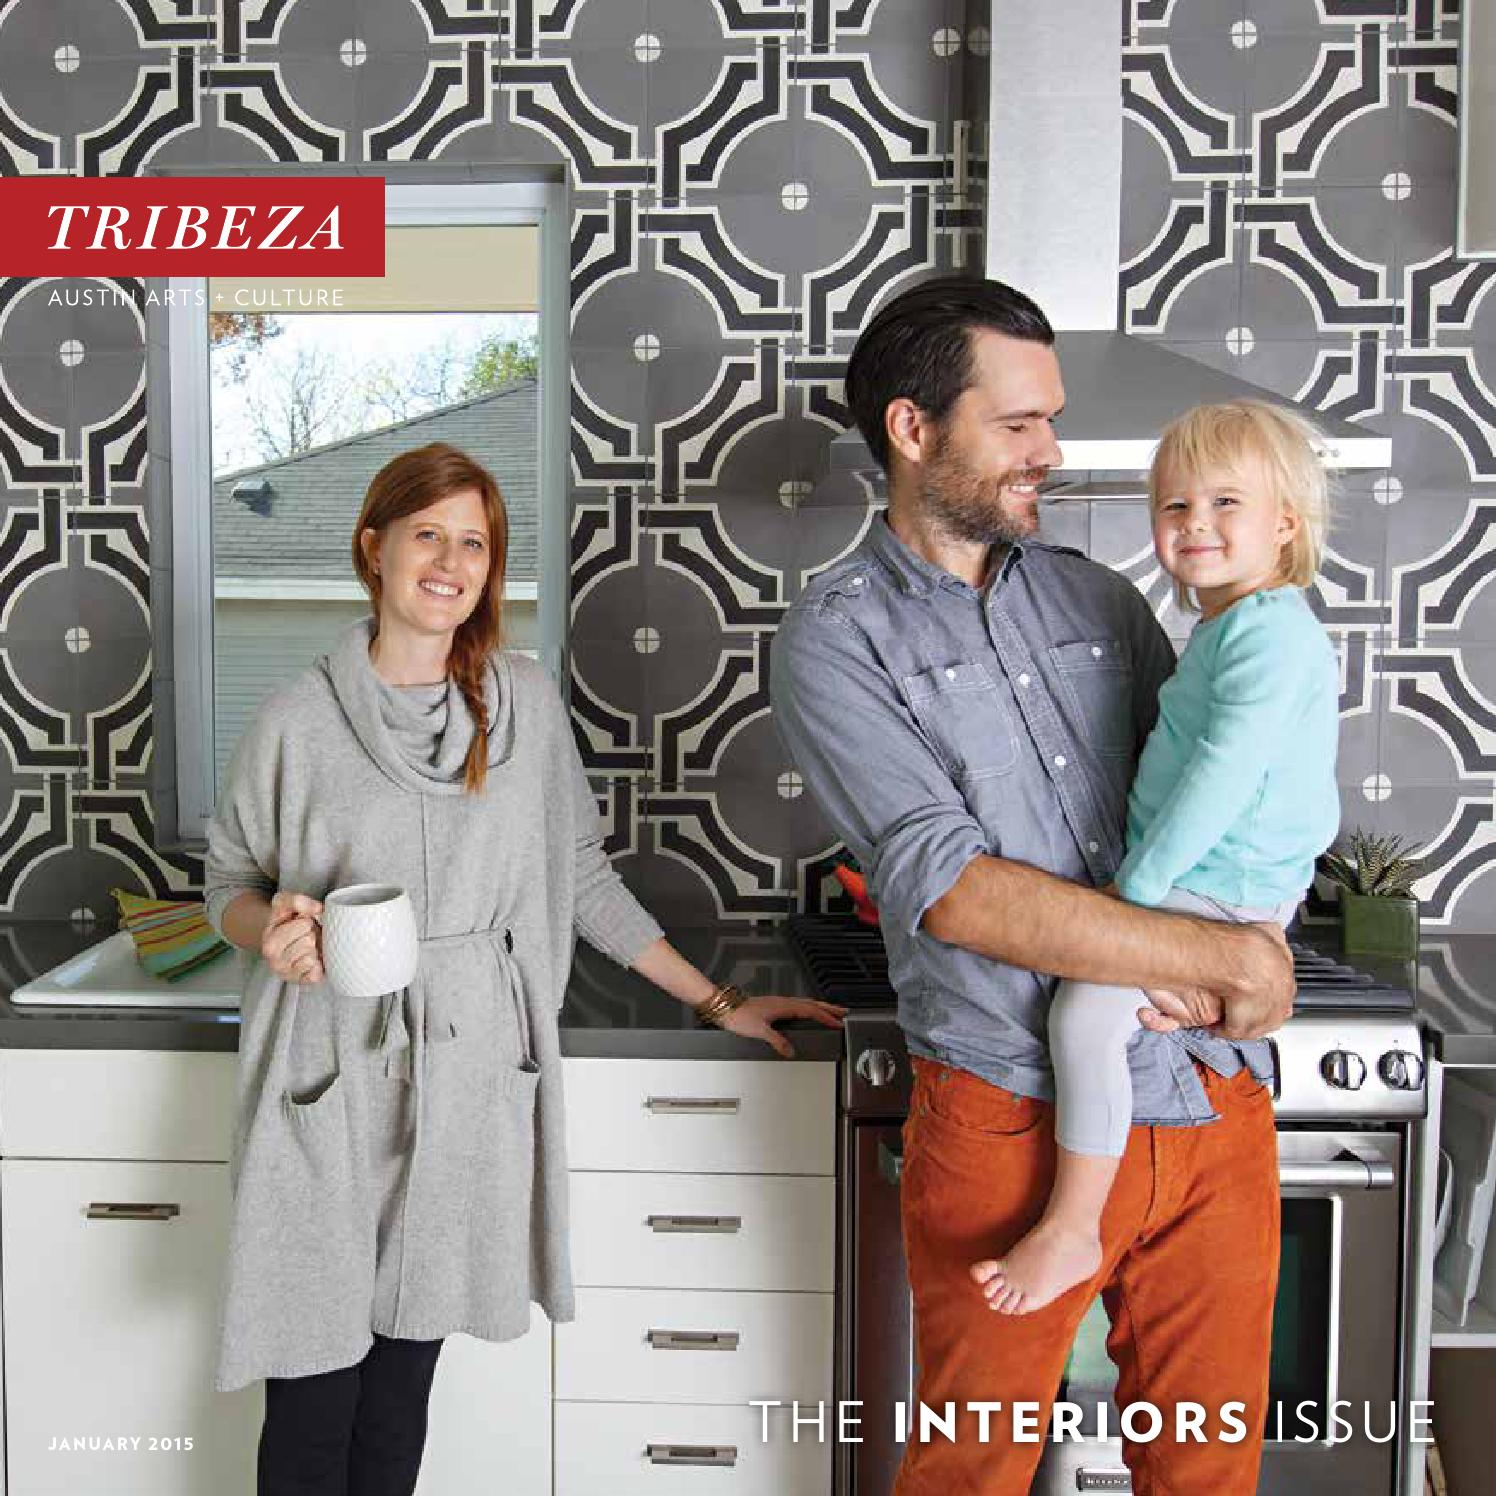 January Interiors Issue 2015 By TRIBEZA Austin Curated